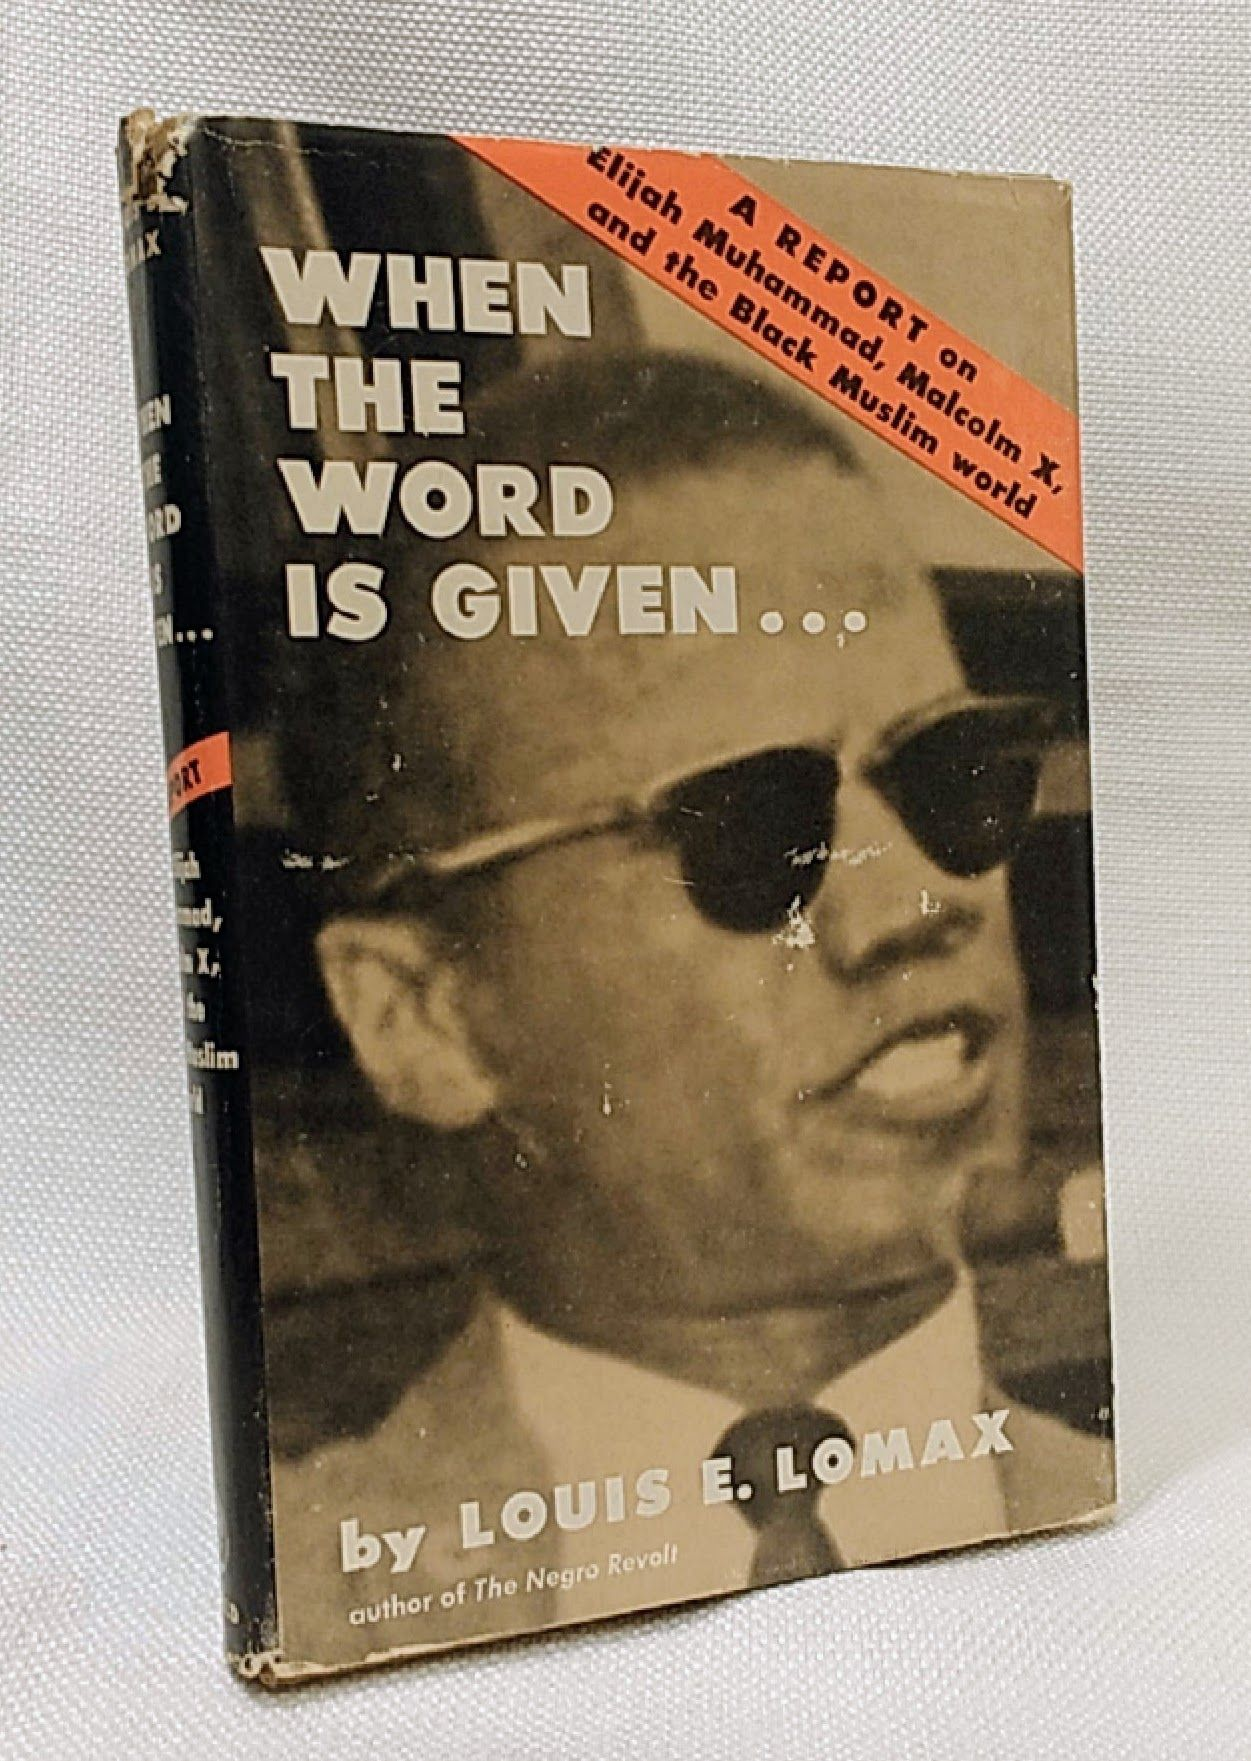 When The Word Is Given: A Report on Elijah Muhammad, Malcolm X, and the Black Muslim World, Louis E. Lomax